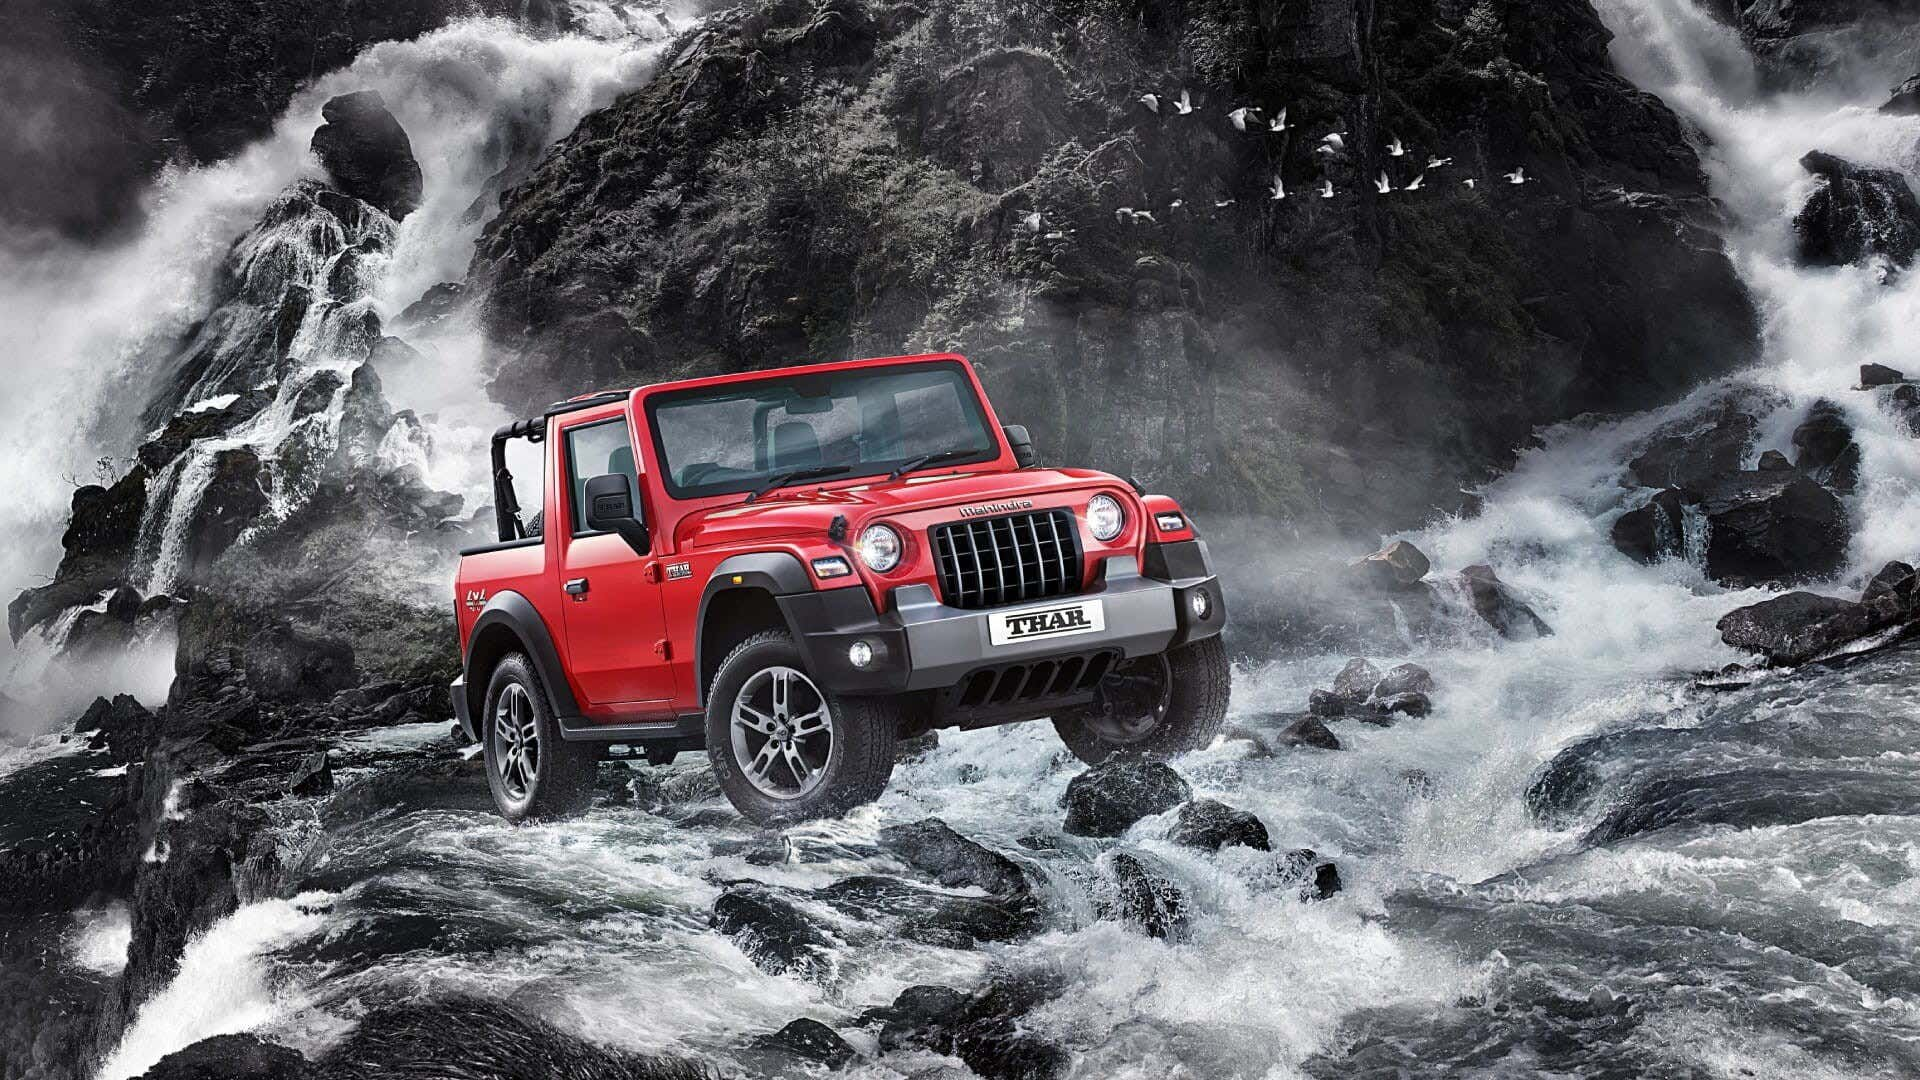 Mahindra Thar 4x4 Specs Details Pricing Overland Expo